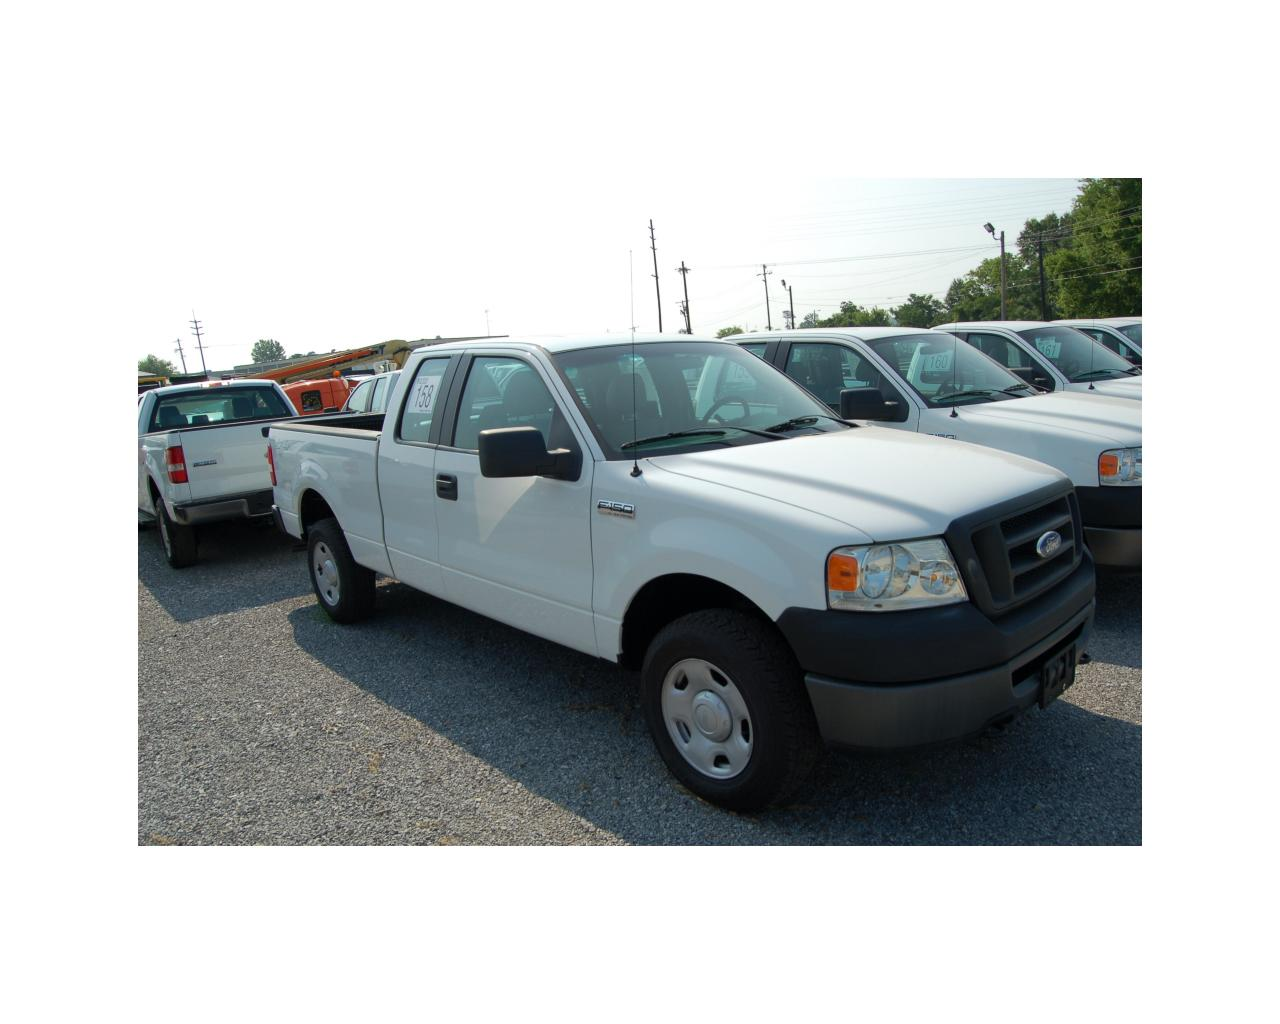 2006 ford f150 extended cab 4x4 pickup j m wood auction company inc. Black Bedroom Furniture Sets. Home Design Ideas